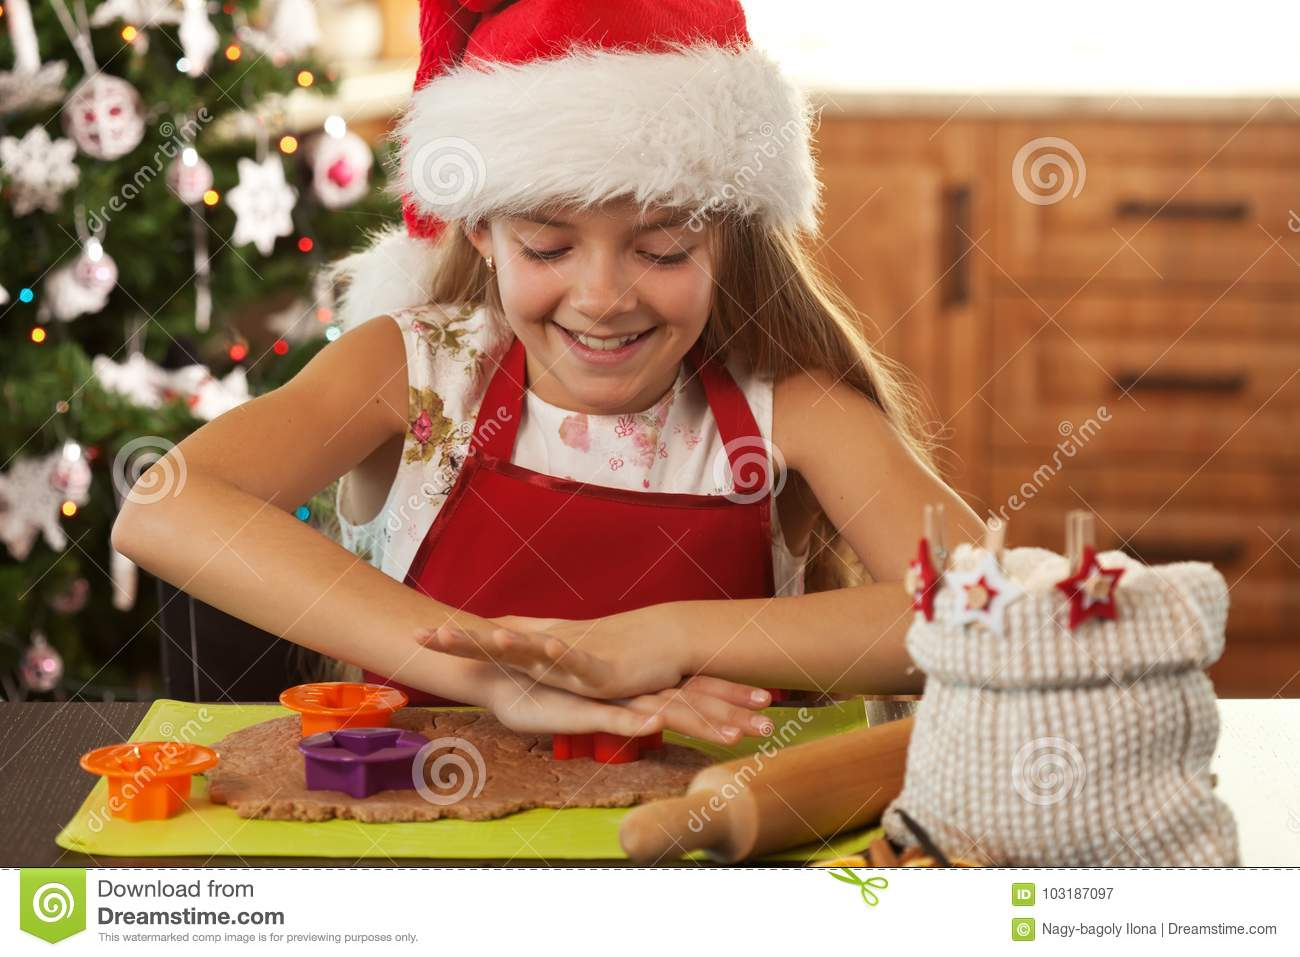 Girl in holidays mood making gingerbread cookies - cutting dough